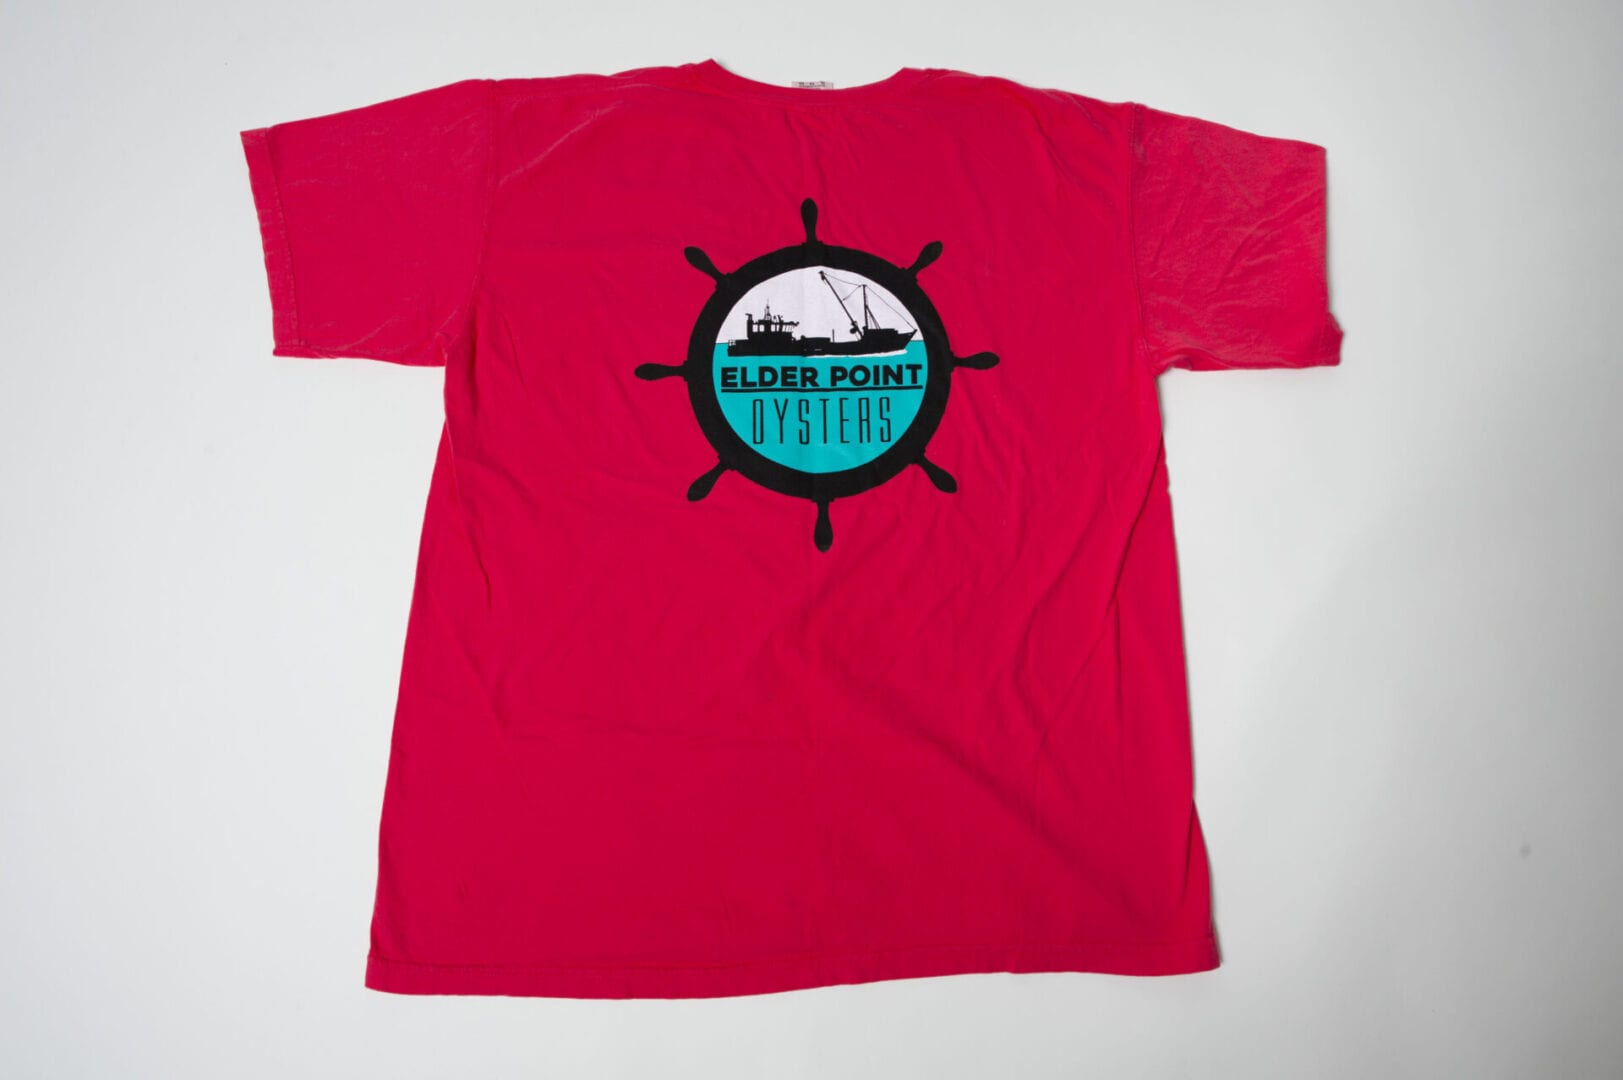 Elder Point Oysters T-Shirt